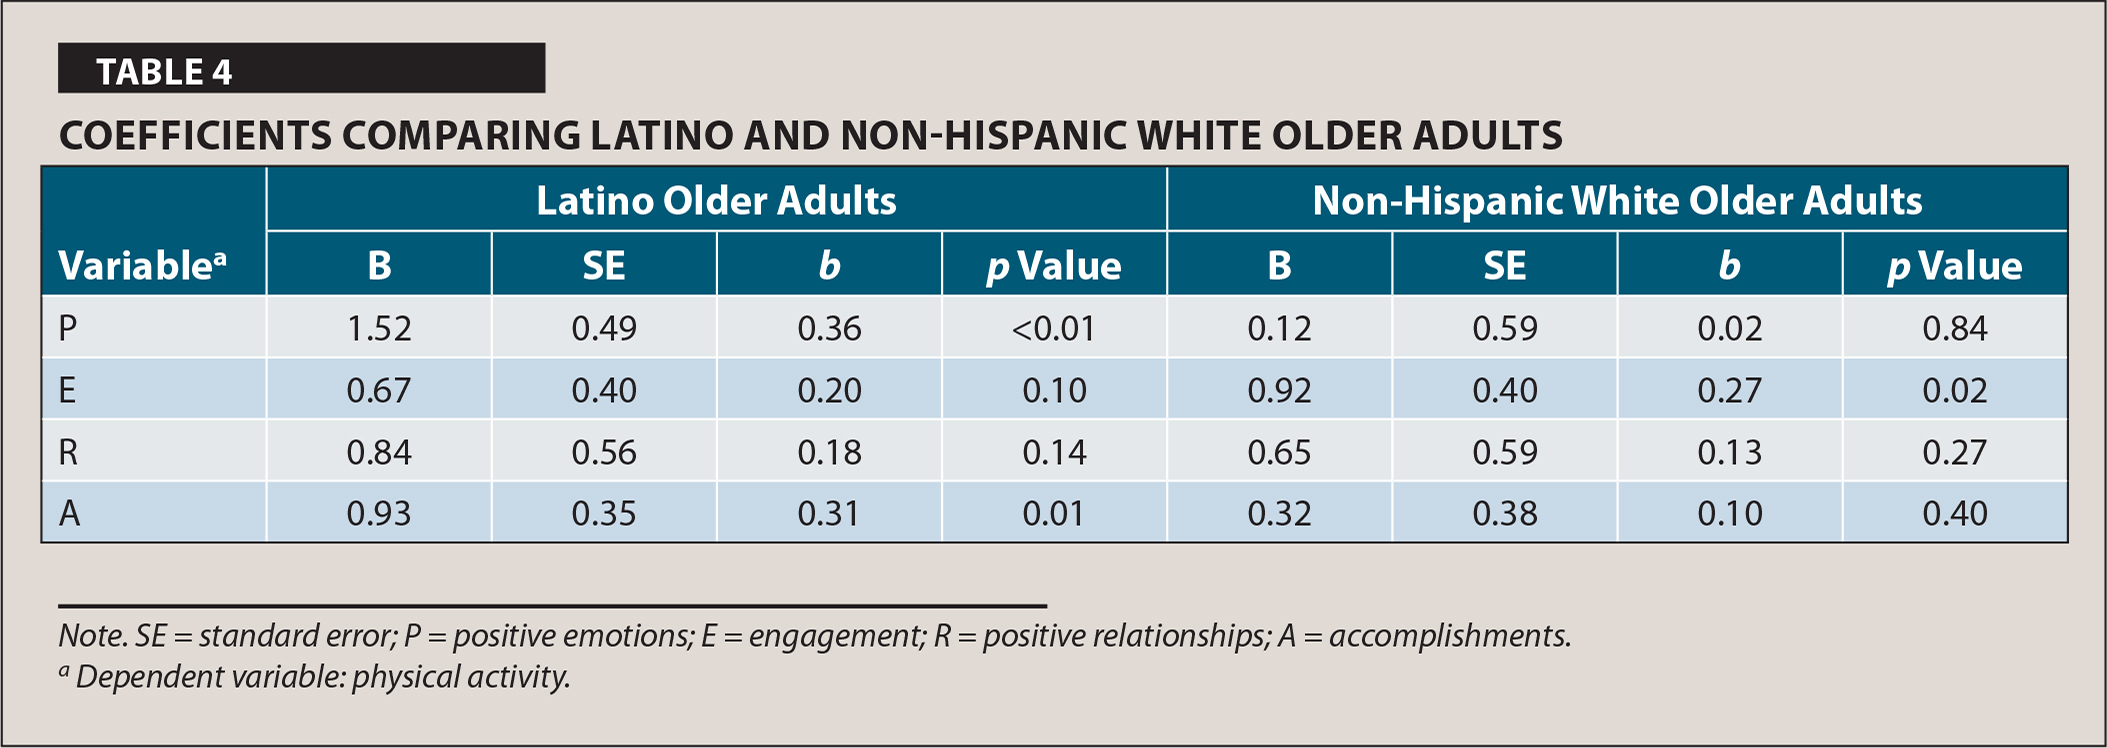 Coefficients Comparing Latino and Non-Hispanic White Older Adults